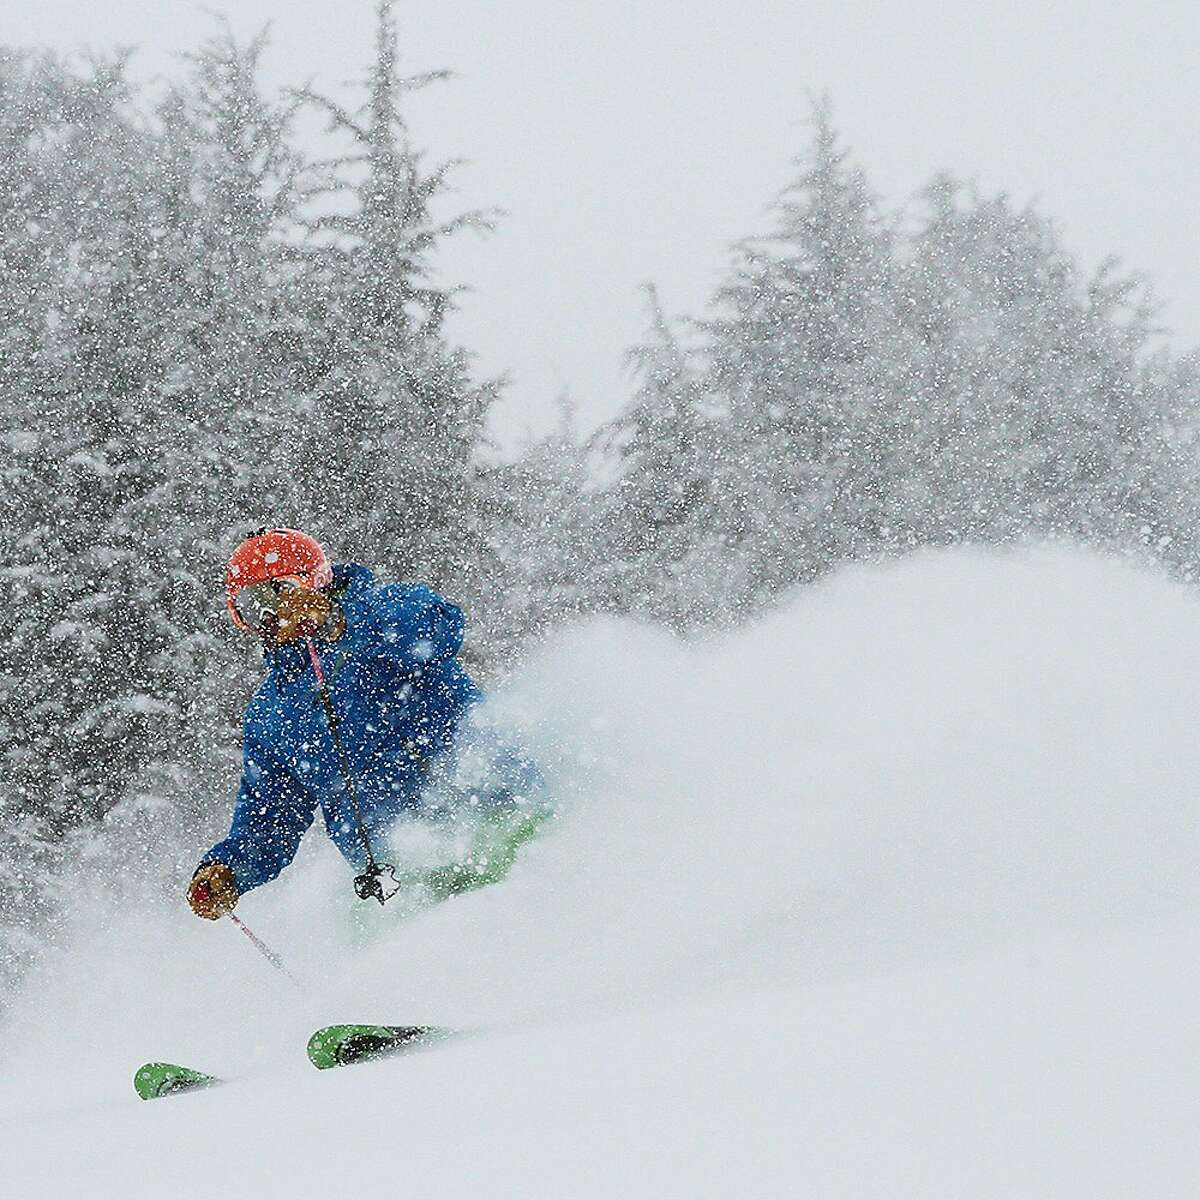 A skier shreds the pow at Kirkwood . . . Kirkwood Ski Area is looking at its best conditions for the Christmas holiday season in years. It already has a 36-inch base and this week was operating 8 of 15 lifts, with more expected to come on line for the holidays. Kirkwood is located off Highway 88 near Carson Pass in the central Sierra, about an hour's drive south of South Lake Tahoe.